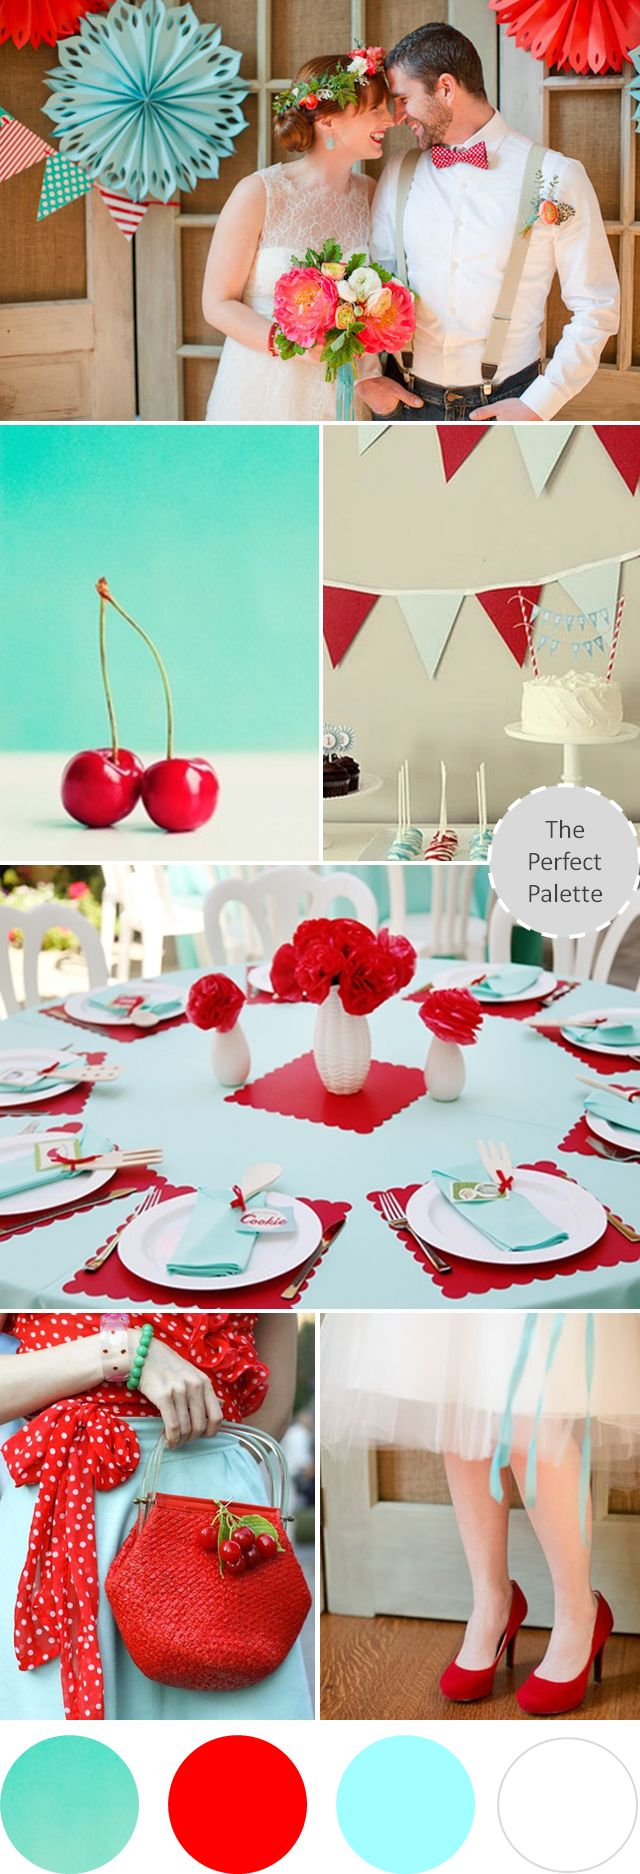 http://www.theperfectpalette.com/2013/08/wedding-colors-i-love-shades-of-red-aqua.html